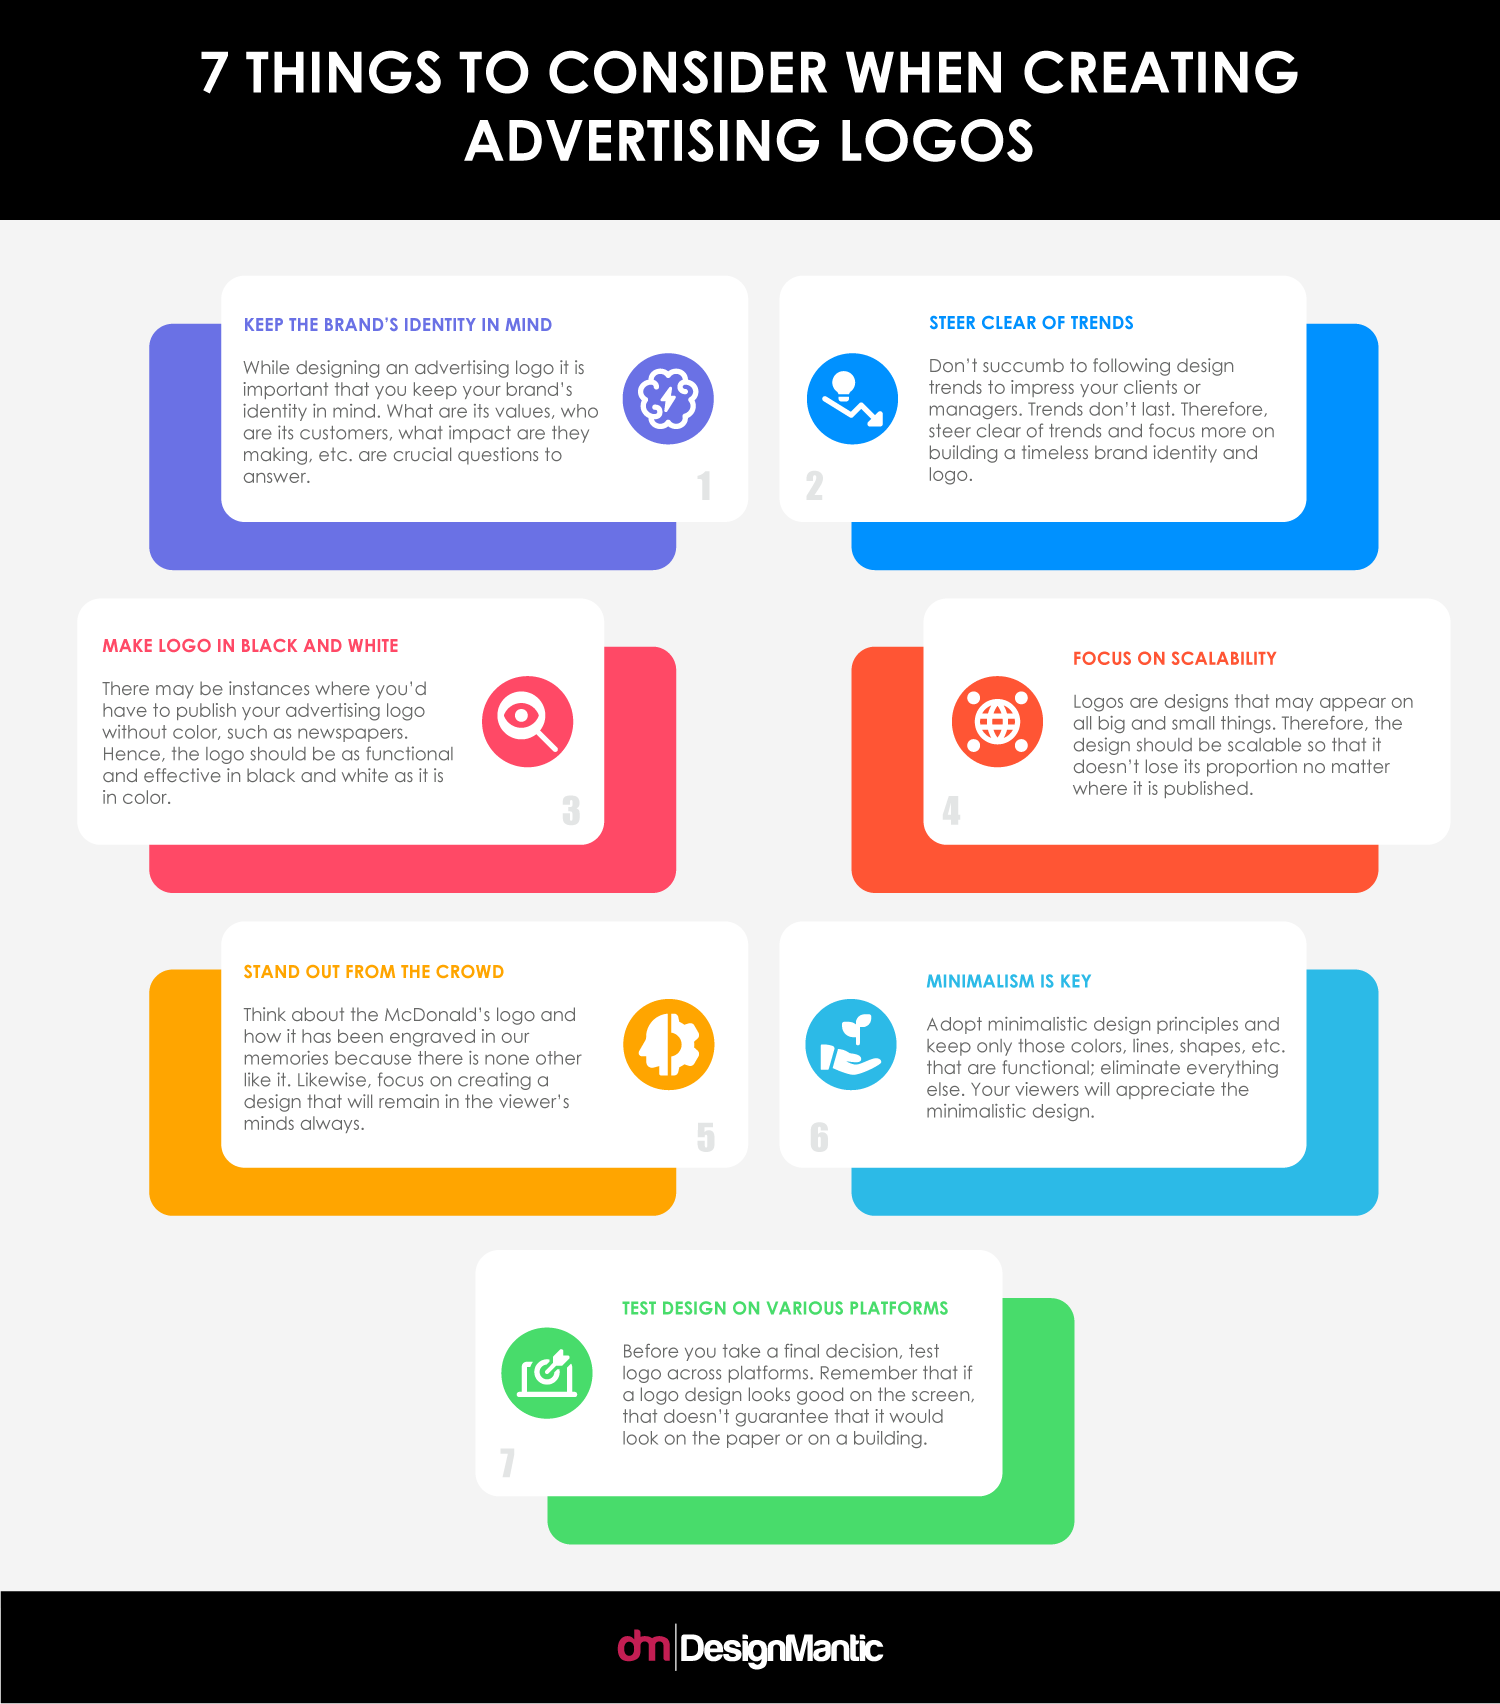 7 Considerations For Advertising Logos